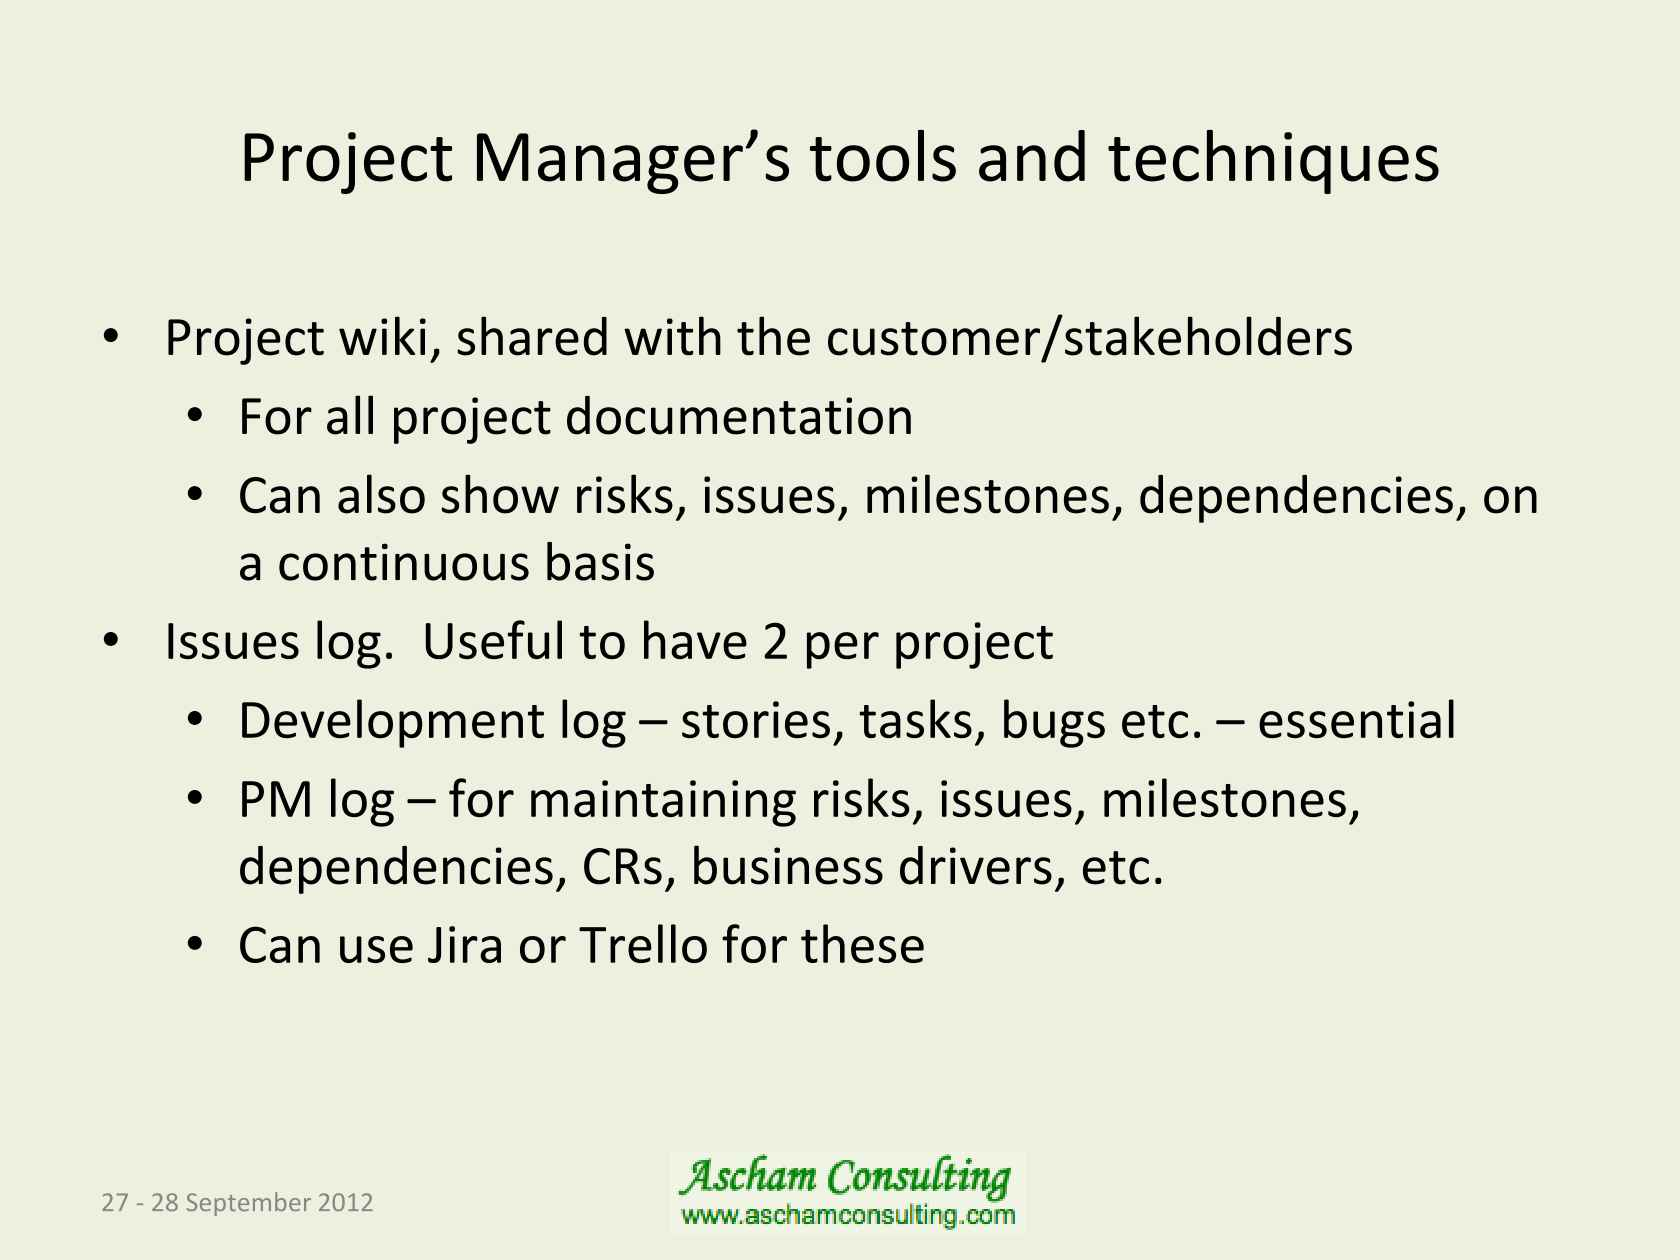 Project Management In An Agile World 27 Pm Projects Technical Discussions 2 Comments